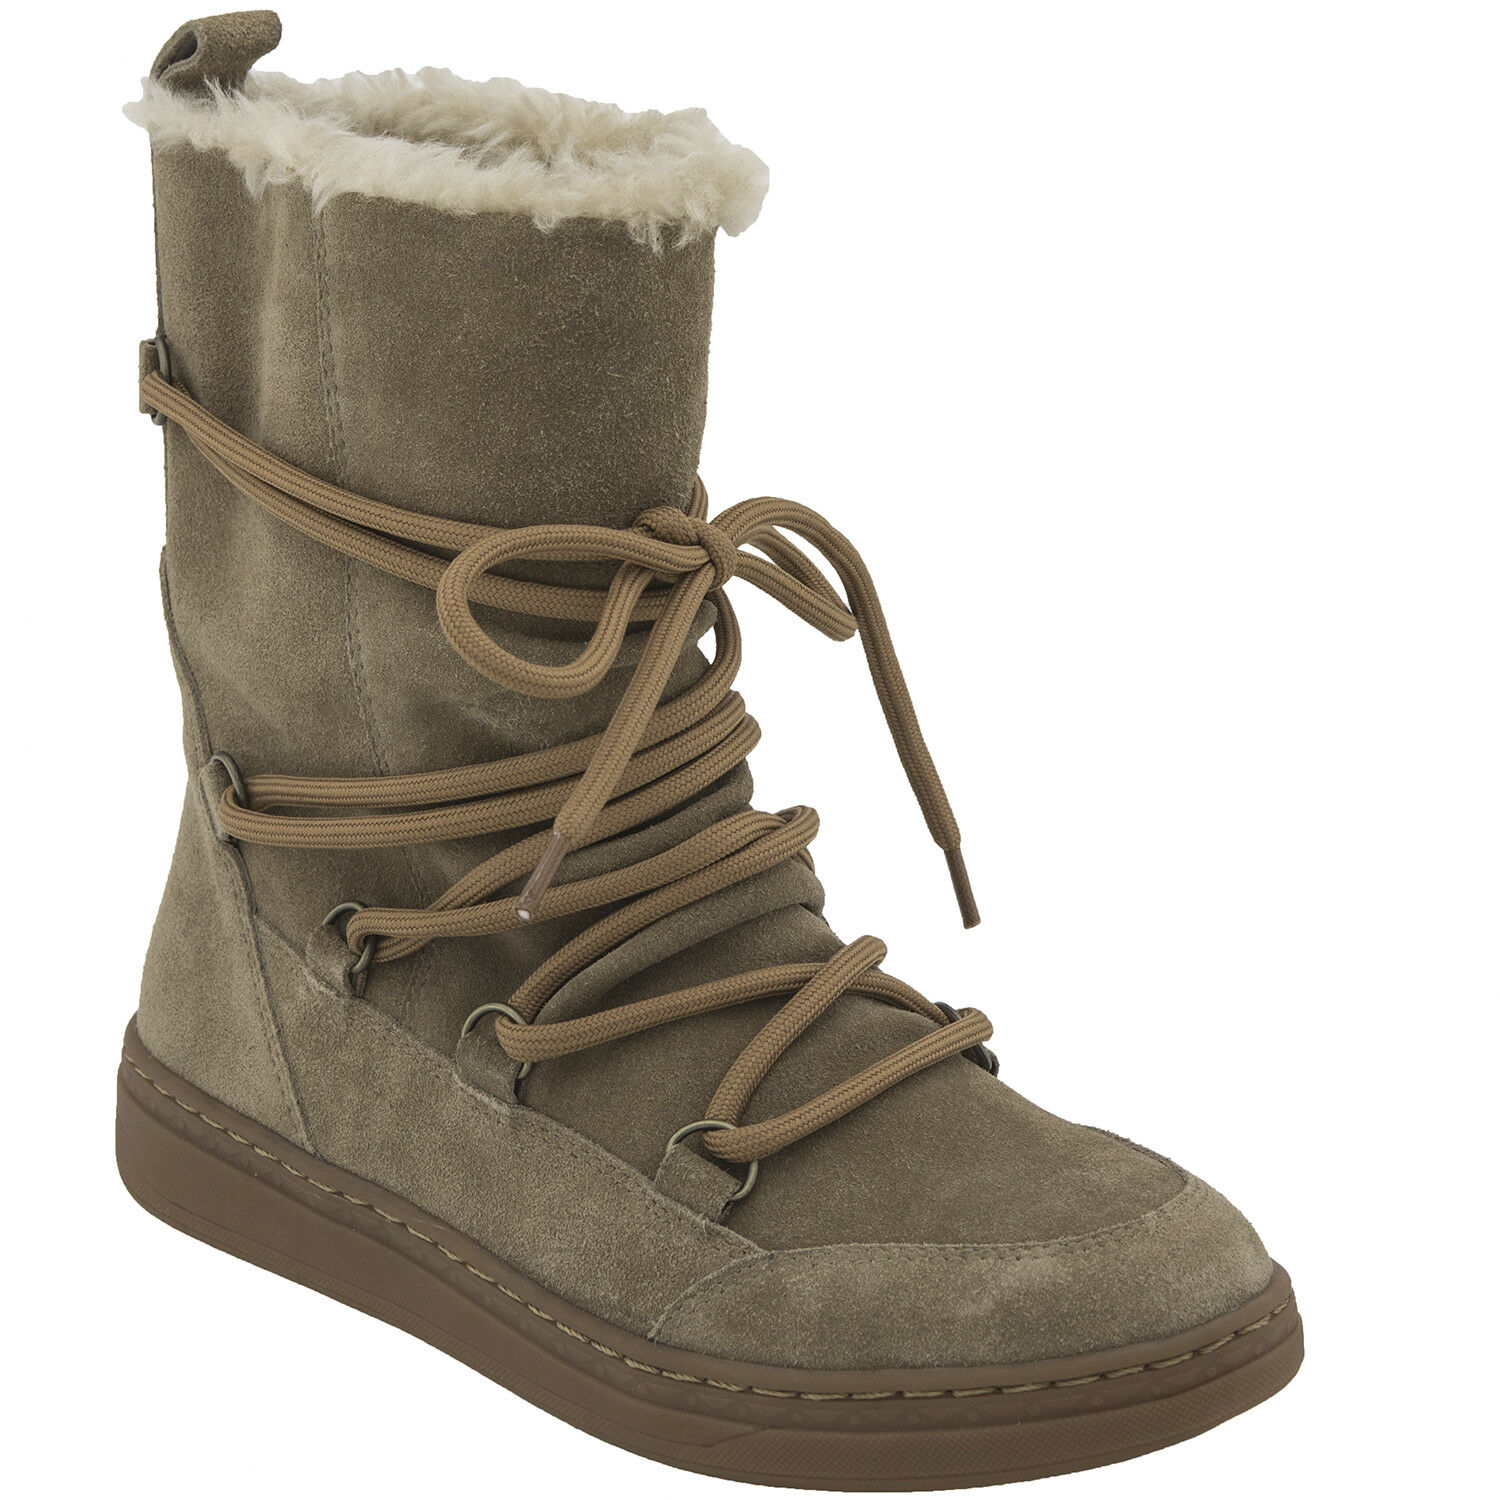 Earth shoes Zodiac Winter Snow Boot Water Resistant Light Tan Womens Size 9